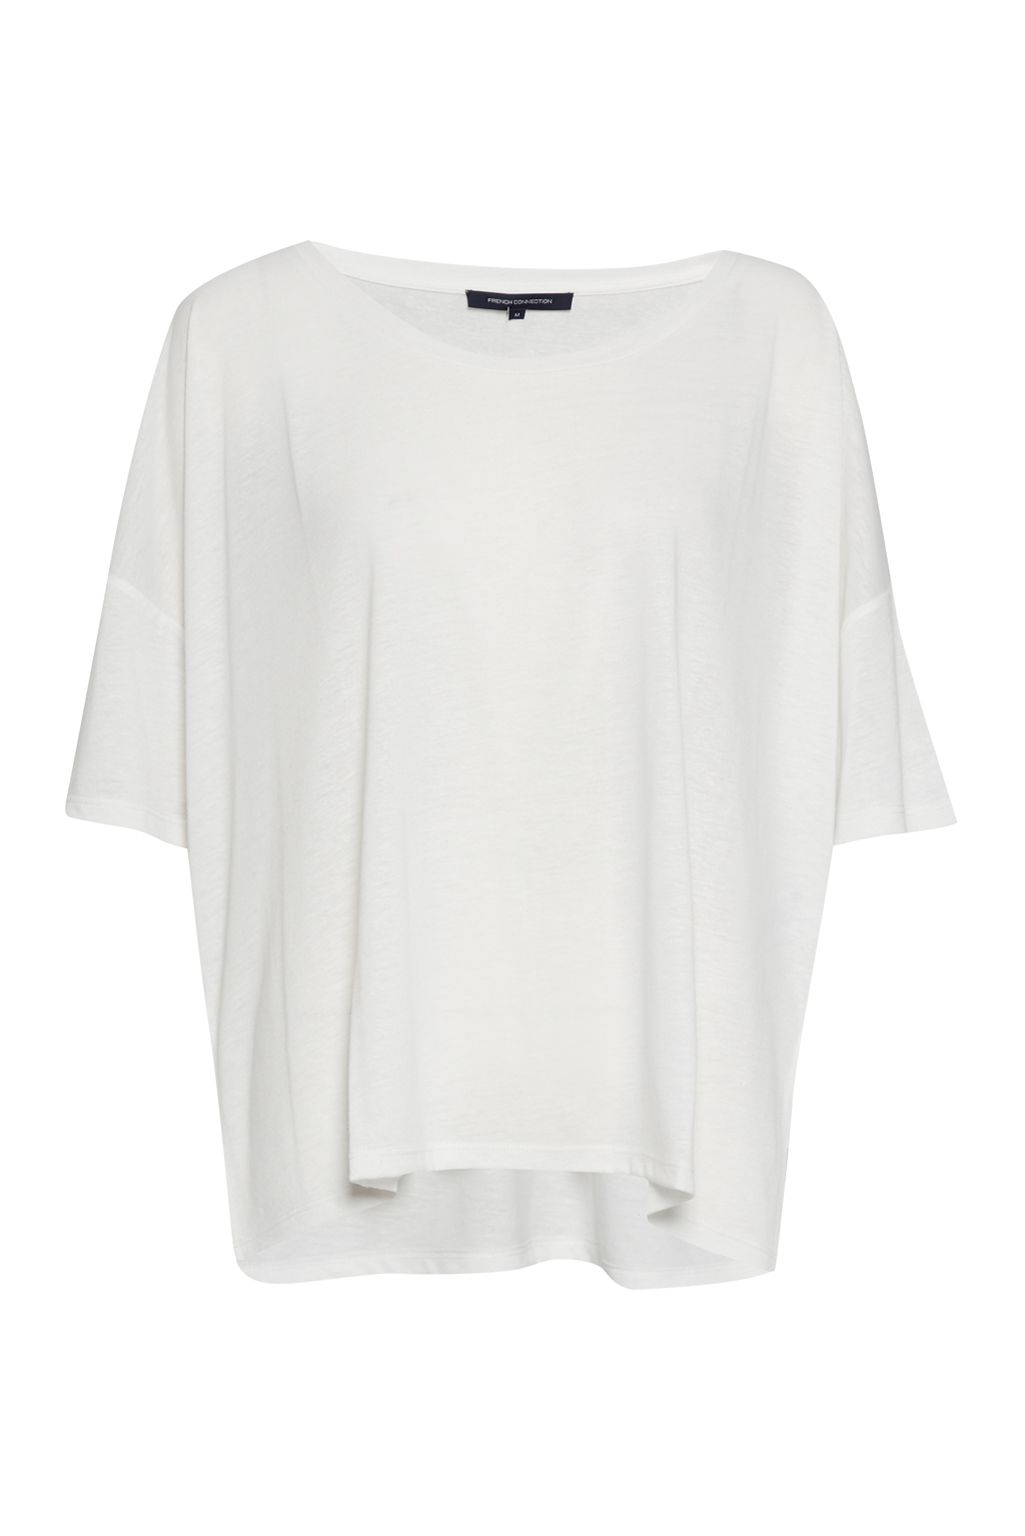 French Connection Hetty Marl Oversized Jersey T-Shirt, White